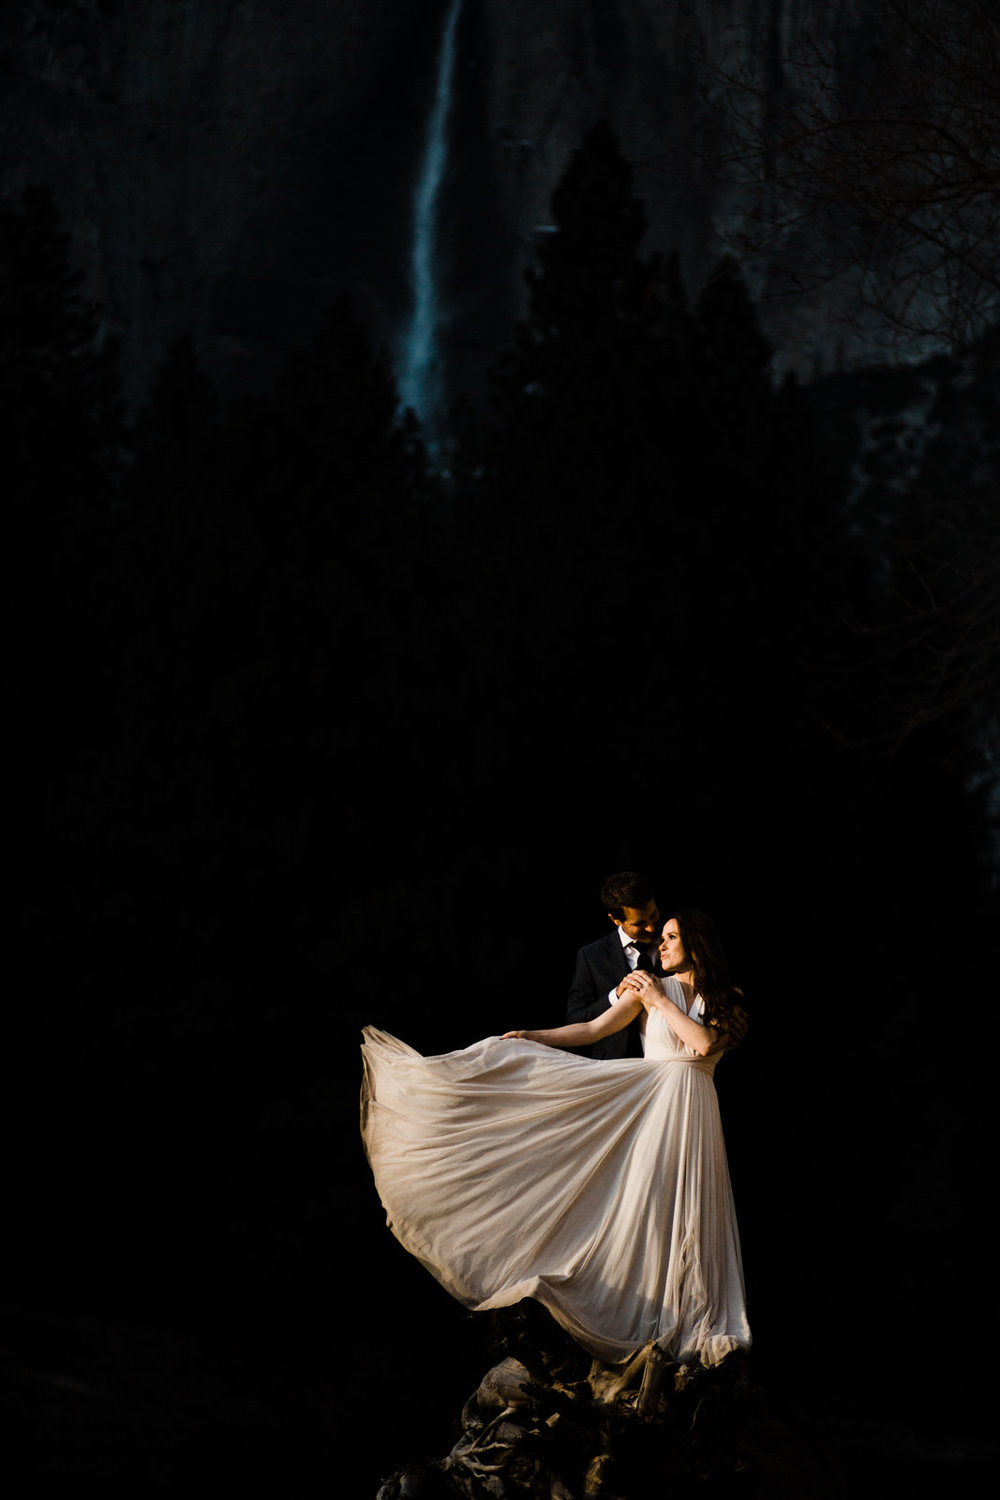 winter-elopement-california-intimate-adventure-photographer-yosemite-national-park-daniela-vallant-wedding-elopement-photographer-intimate-wedding-photographer-tulle-wedding-dress-ivory